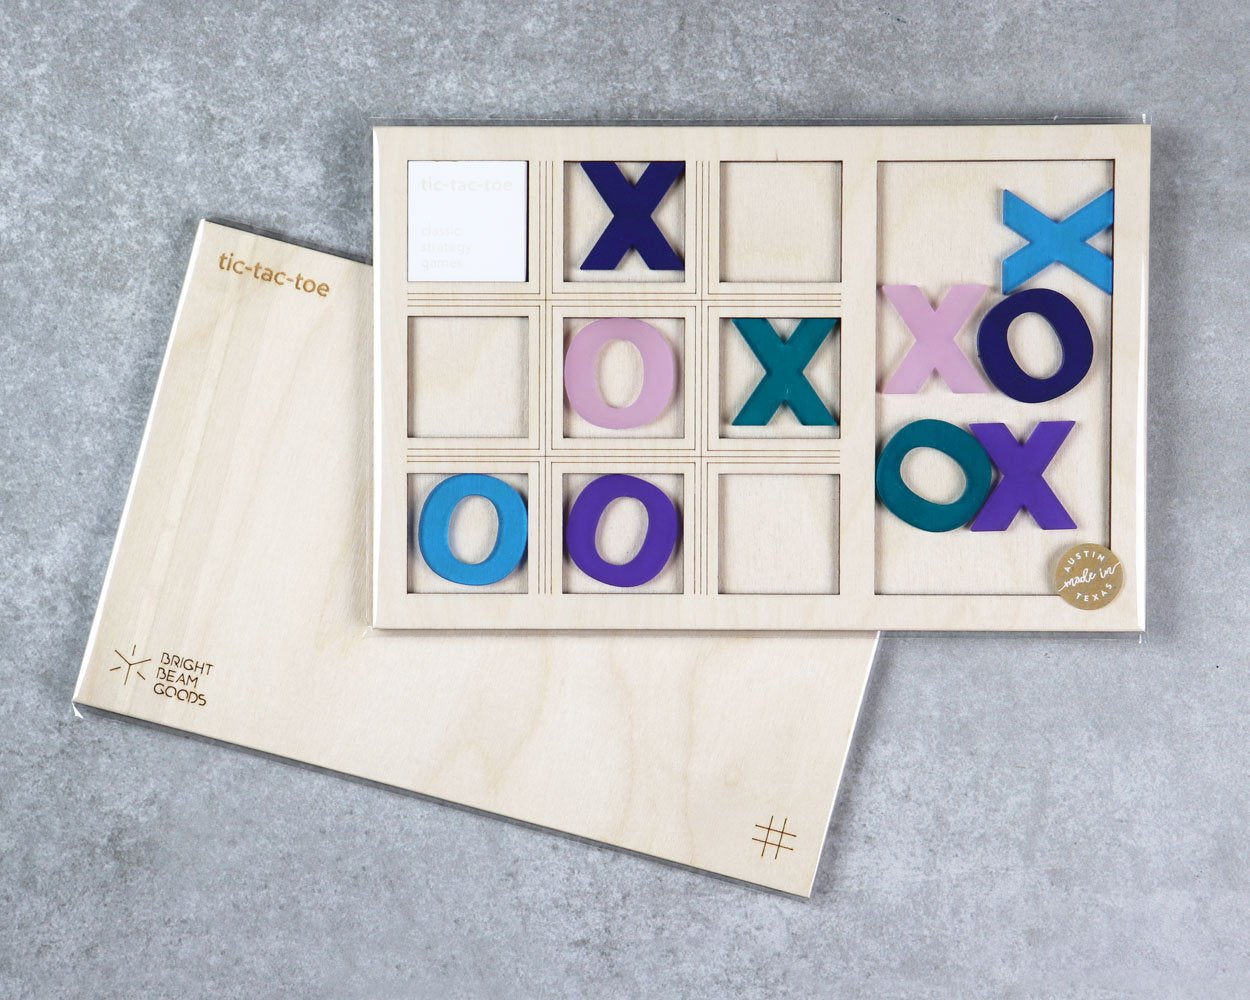 Twilight tic-tac-toe game in packaging